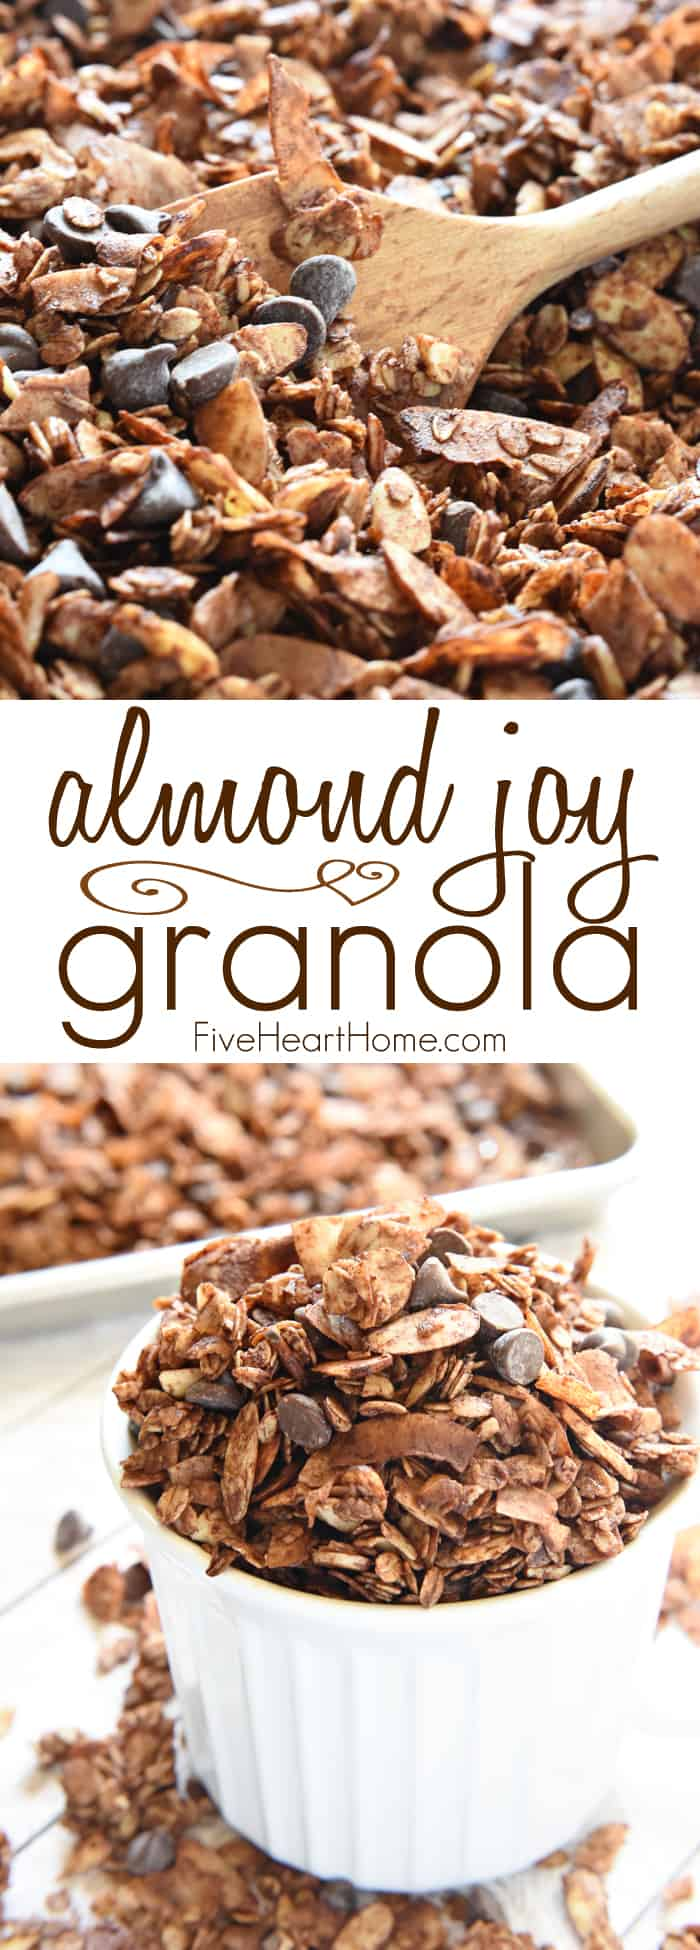 Almond Joy Granola Collage with Text Overlay